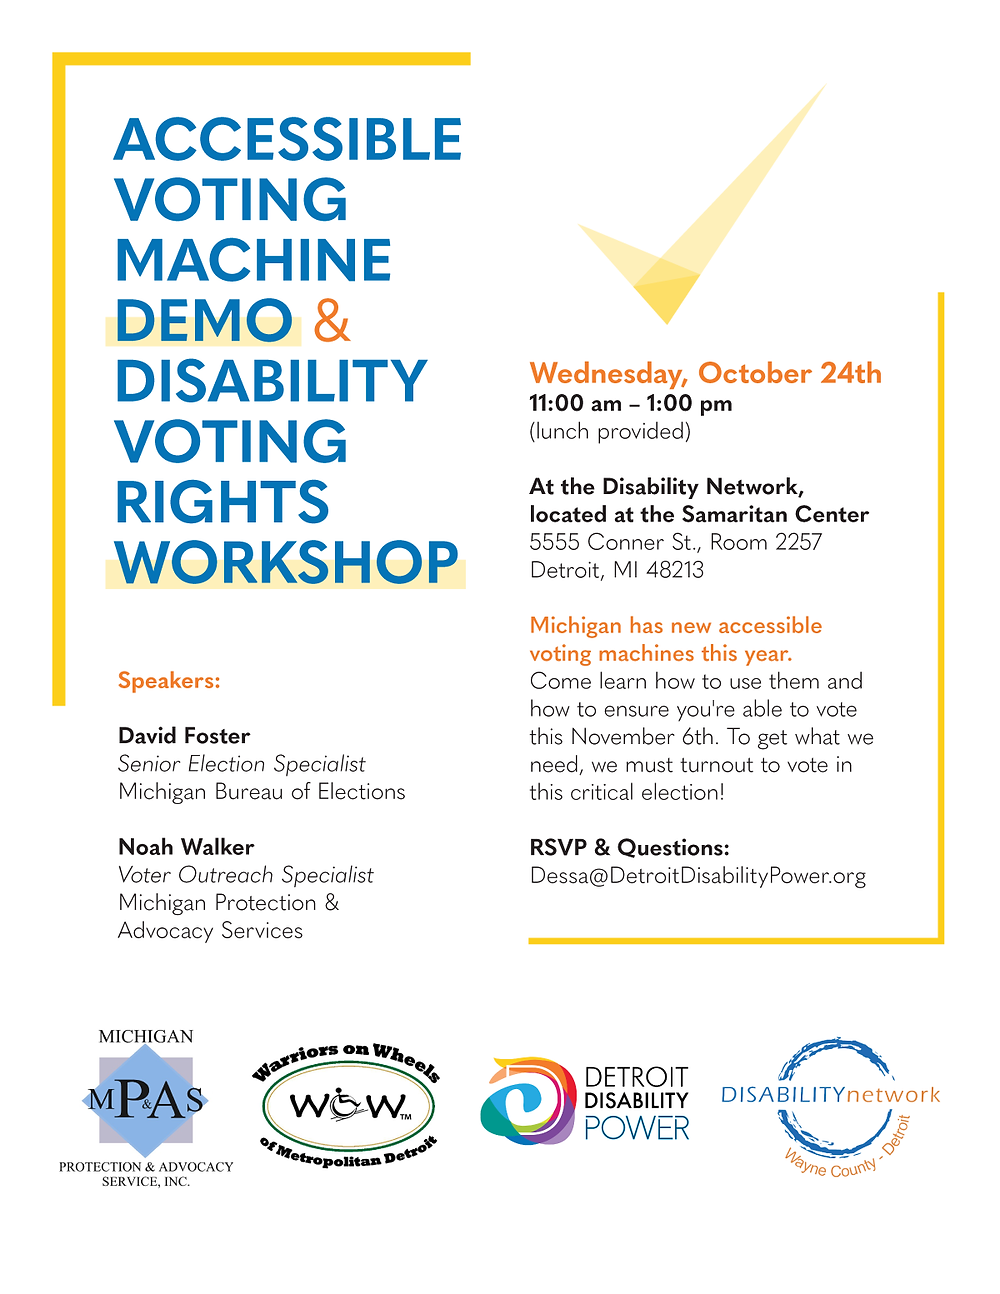 A flyer with the words Accessible Voting Machine Demo and Disability Voting Rights Workshop in blue font